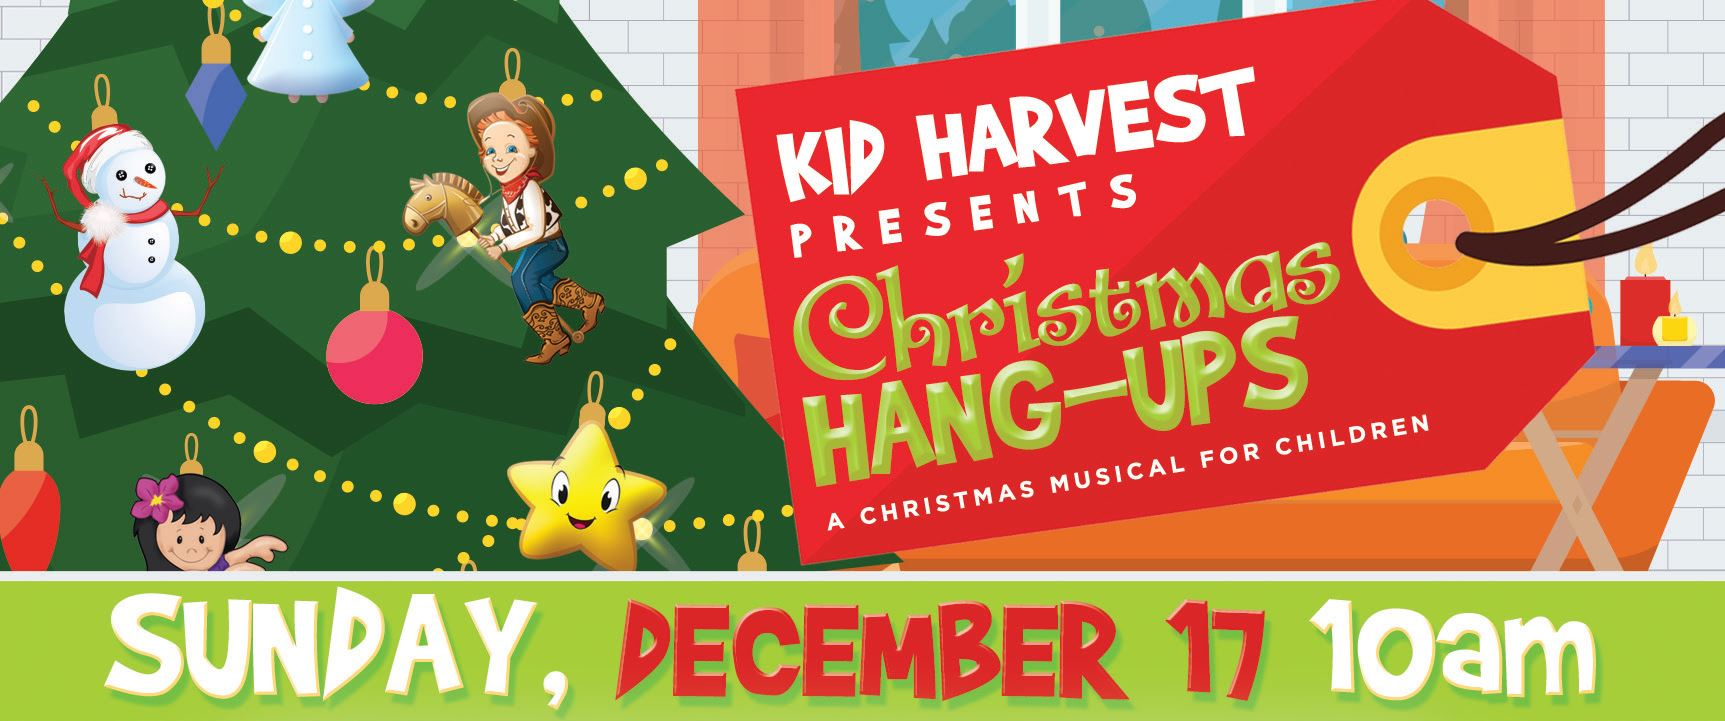 Kid Harvest Presents: Christmas Hang-Ups - A Christmas Musical for children | Sunday, December 17, 10am